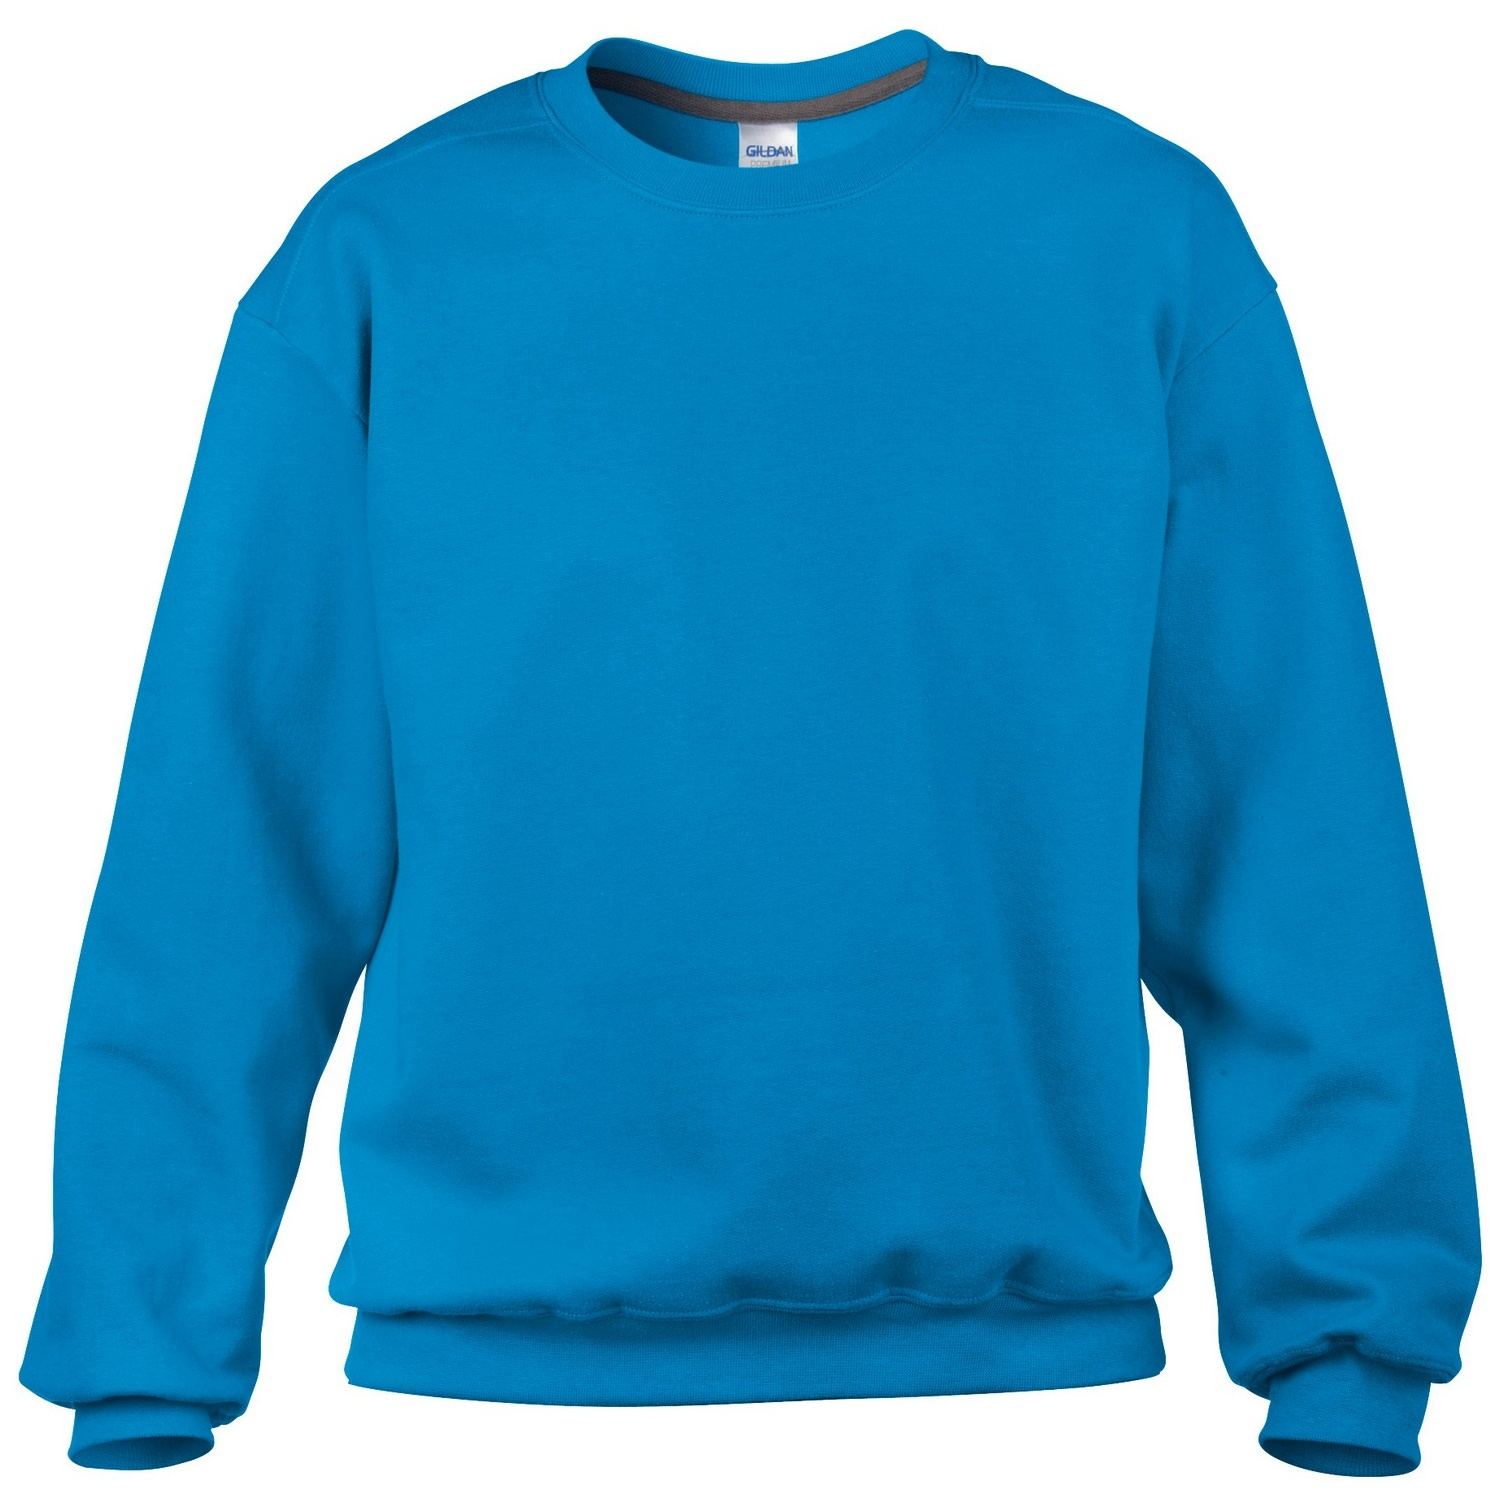 Affordable crew neck sweatshirts are ideal for keeping warm and comfortable, even in the coldest weather. Cheap crew neck fleece sweatshirts are easy to match up with other shirts, like t-shirts and tank tops, for fall and spring days with diverse temperatures.